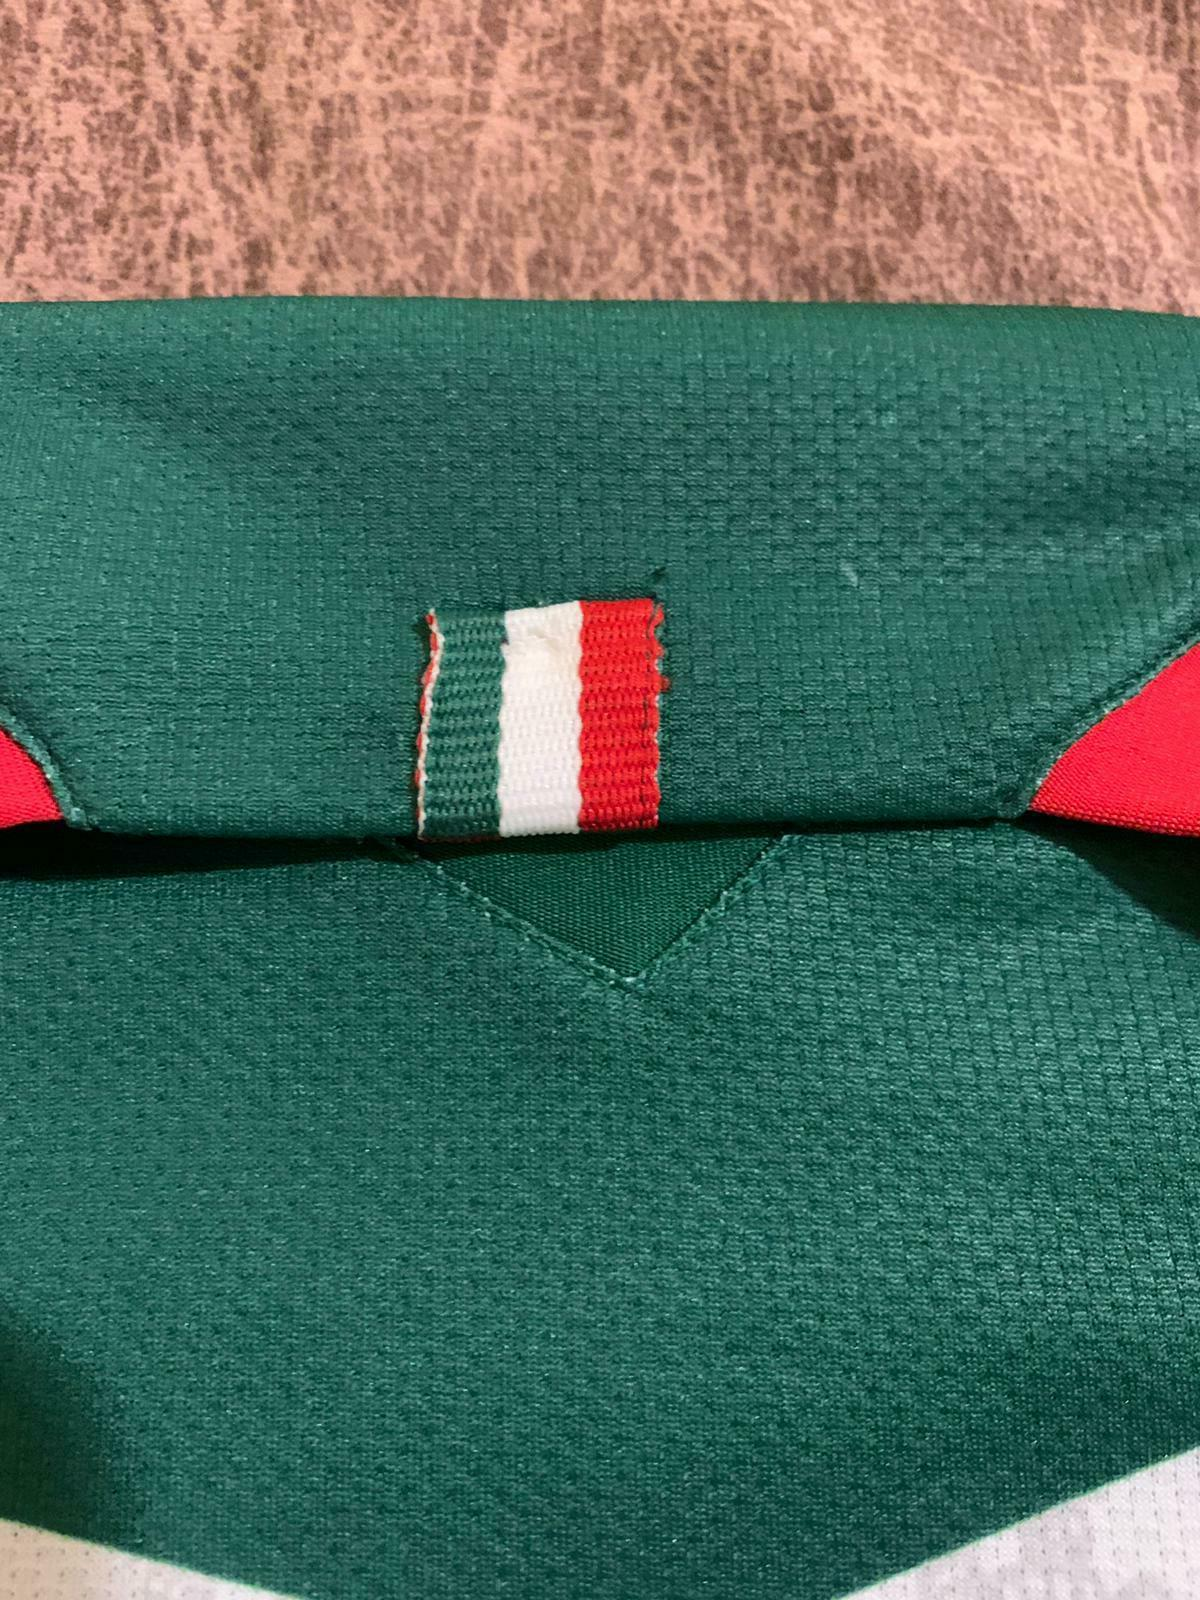 AUTHENTIC Mexico 2006 World Jersey size